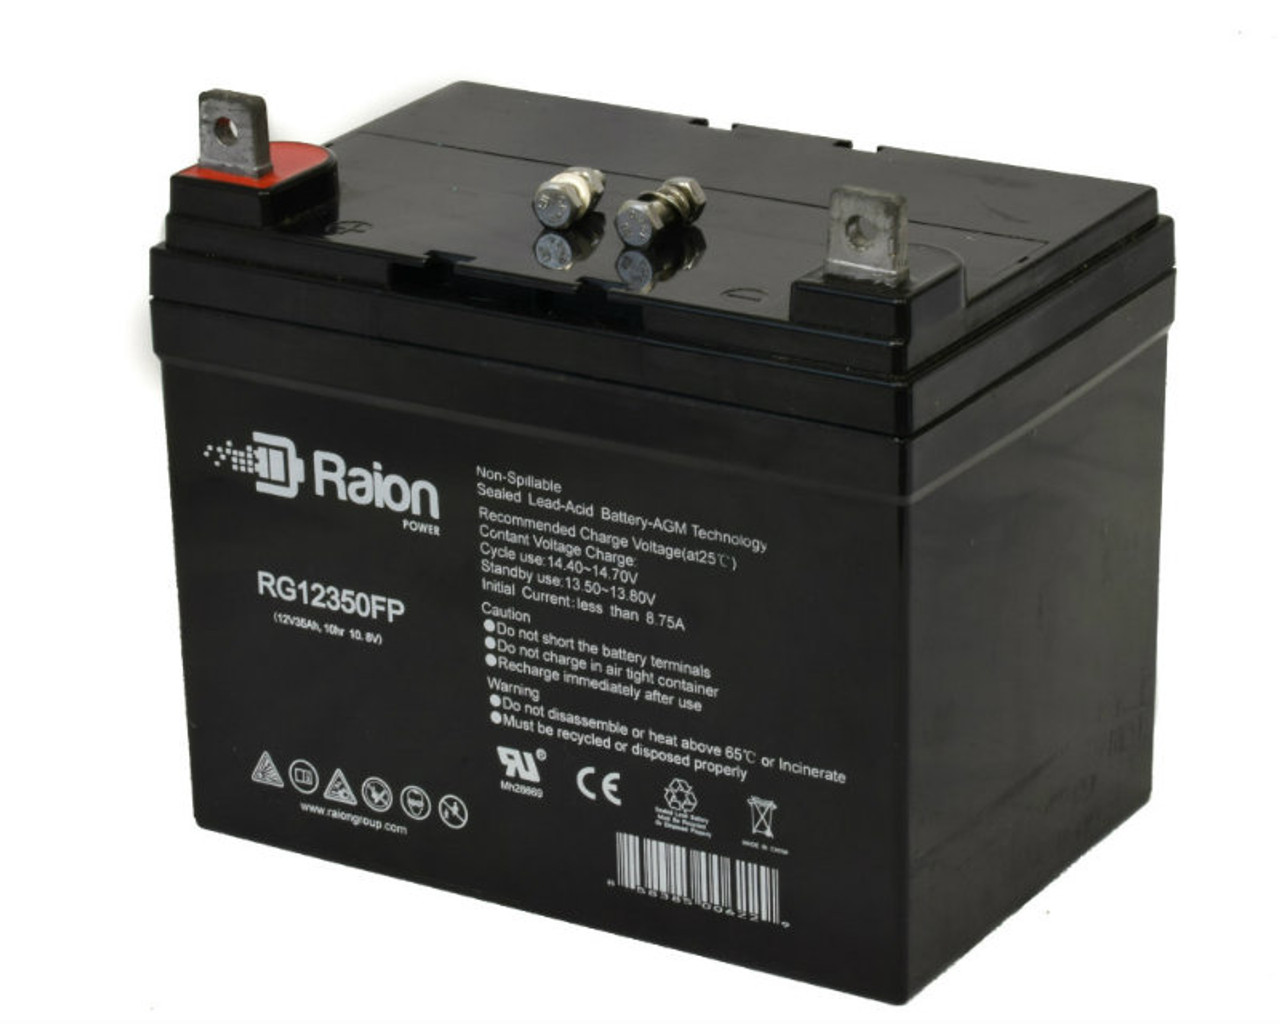 RG12350FP Sealed Lead Acid Battery Pack For Shepard Meyra 967 Mobility Scooter